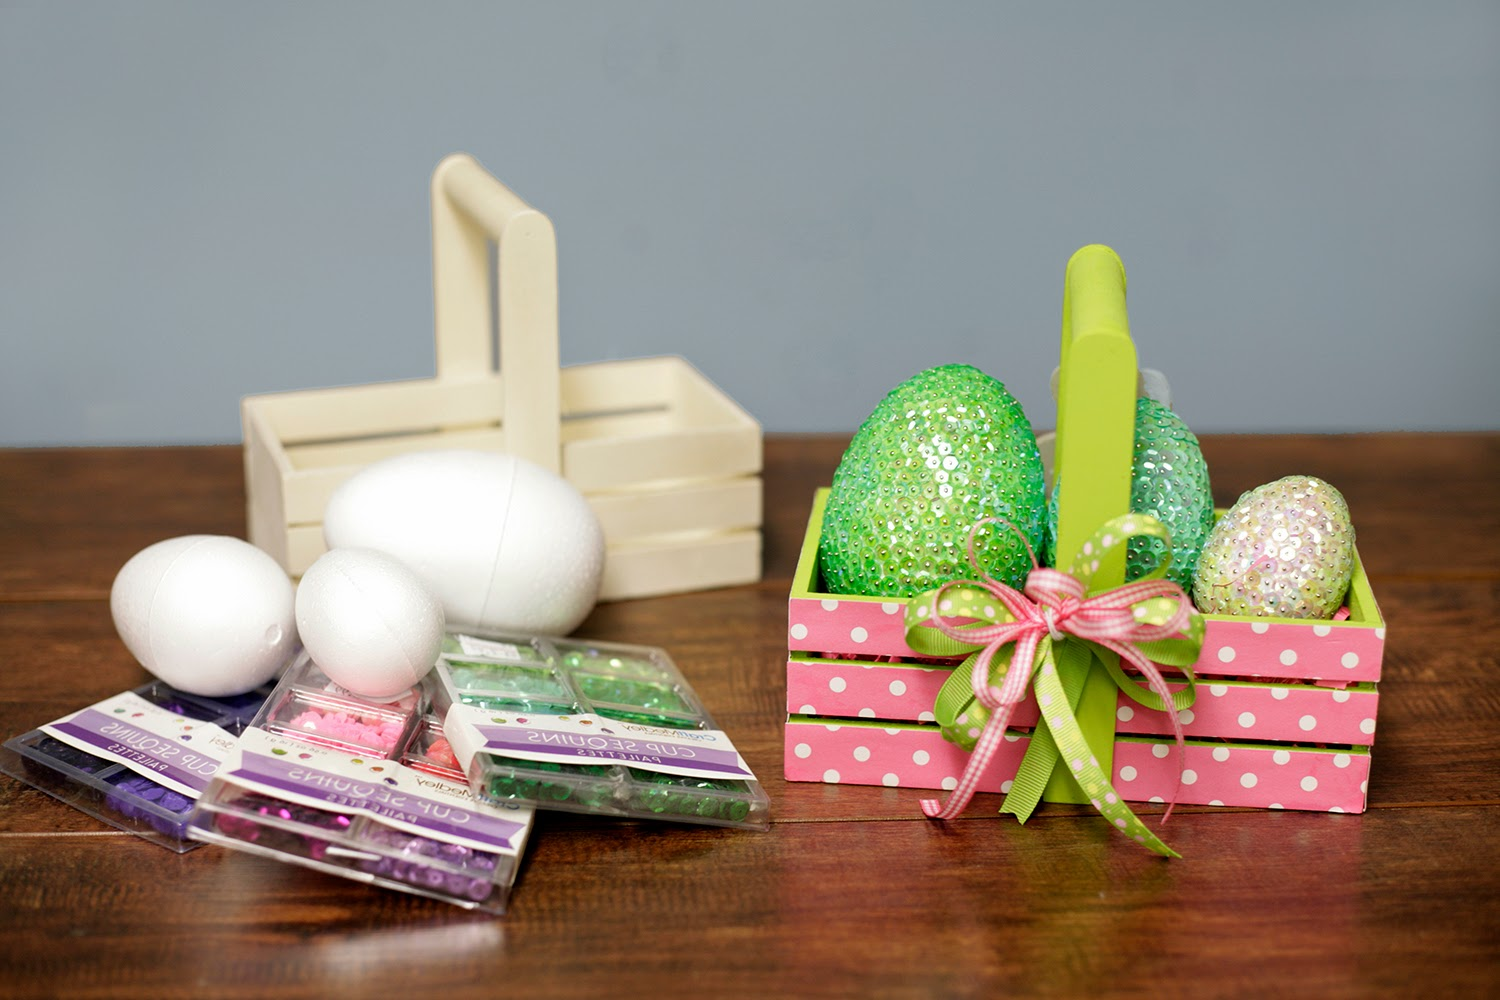 Ben franklin crafts and frame shop monroe wa spring and easter make a cute egg basket using foam eggs decorated with sequins decorative tape ribbon and an unfinished wood basket solutioingenieria Image collections